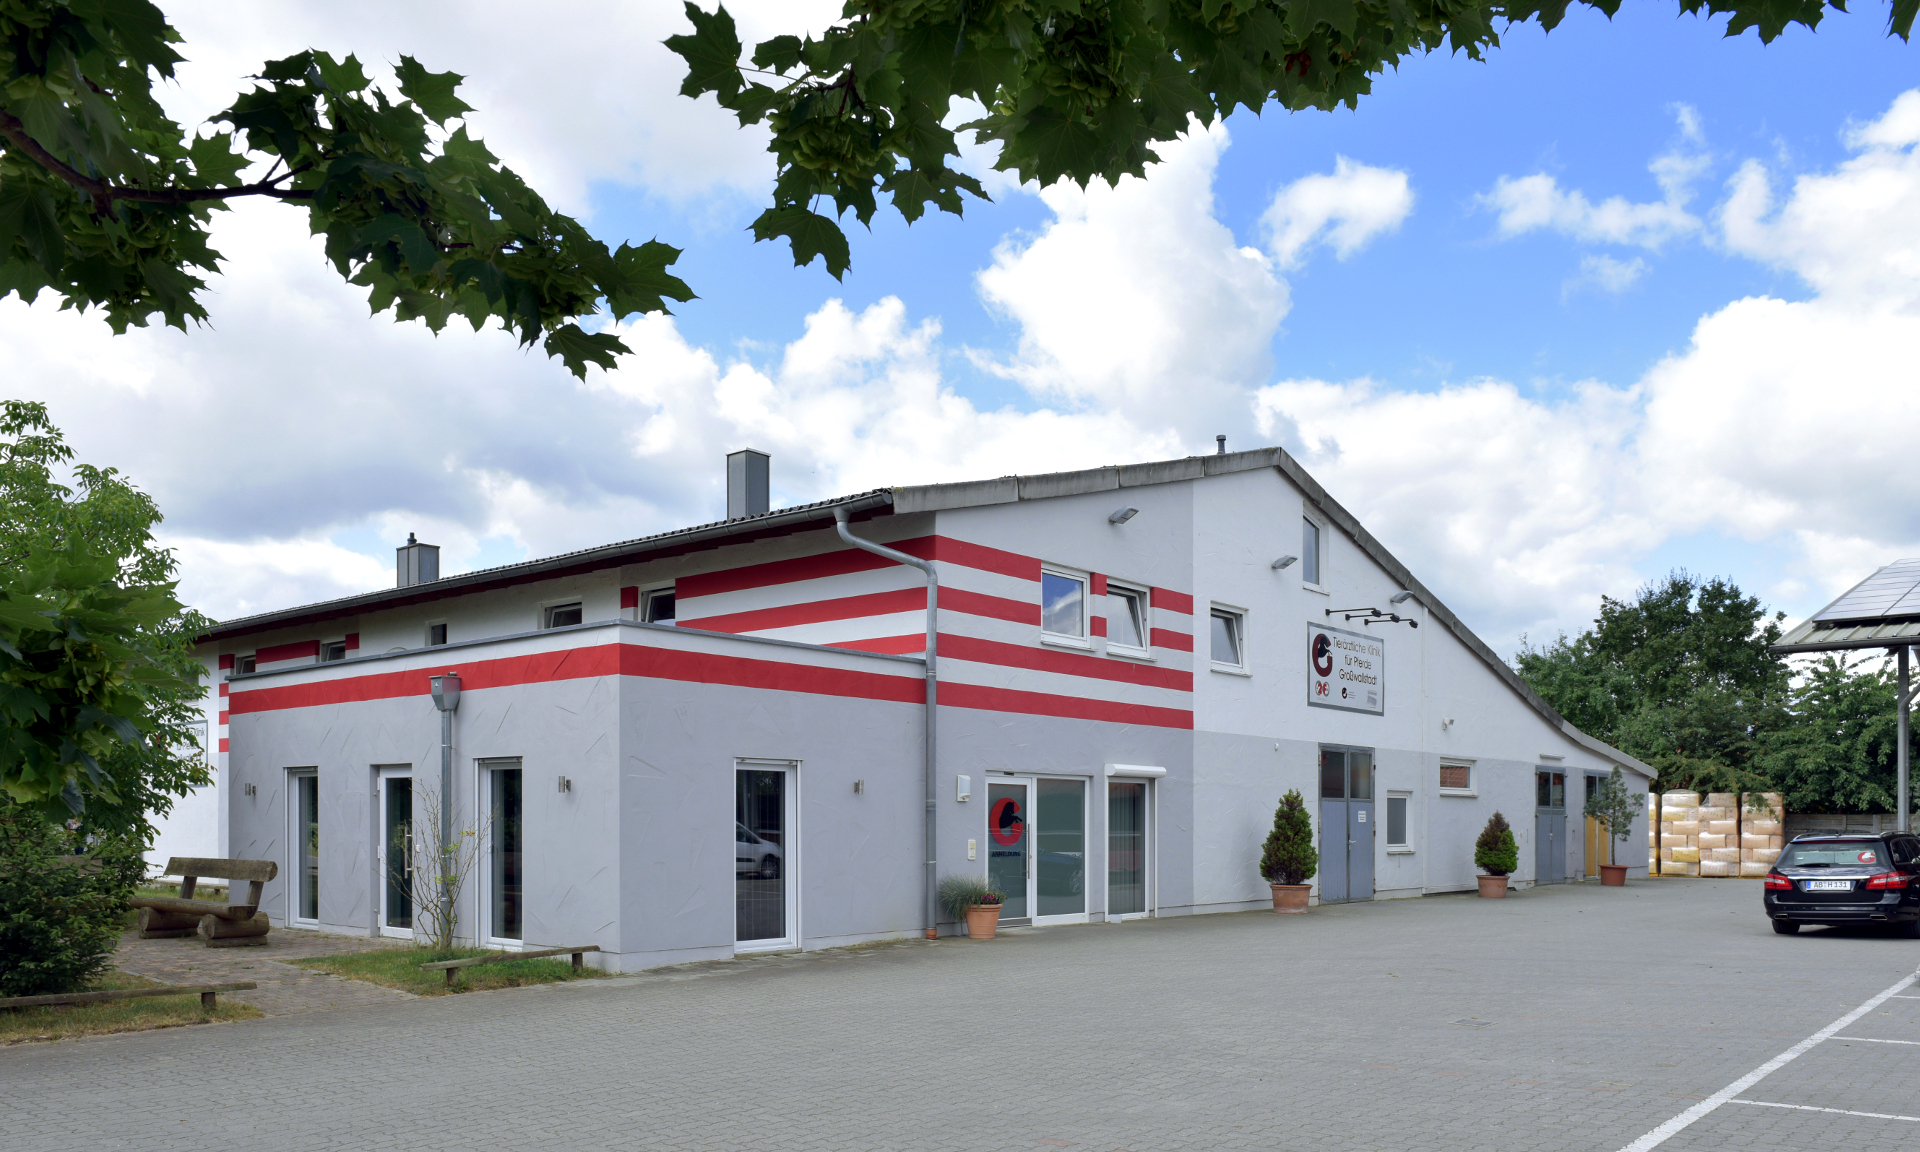 Competence centre for horses inthe area of Rhein-Main